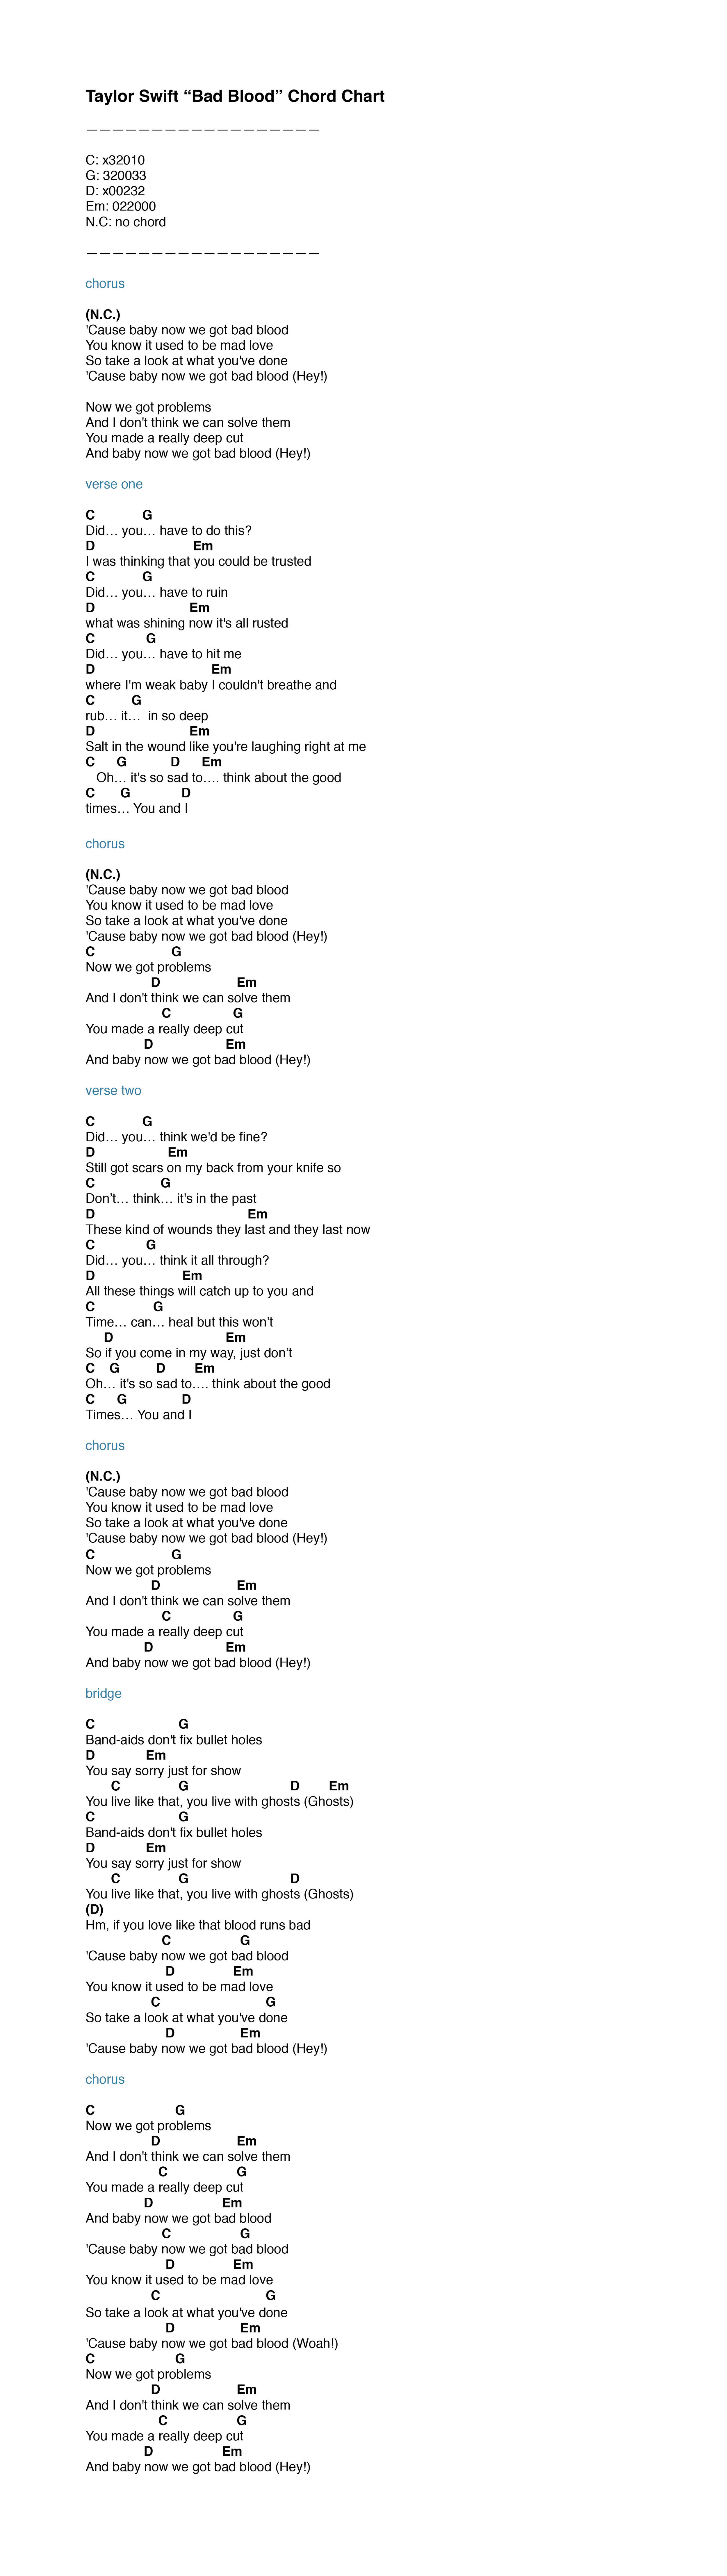 Taylor swift quotbad bloodquot chordistry the video above will show you all of that and you can use the chord chart below to sing and play along too enjoy taylor swift hexwebz Choice Image